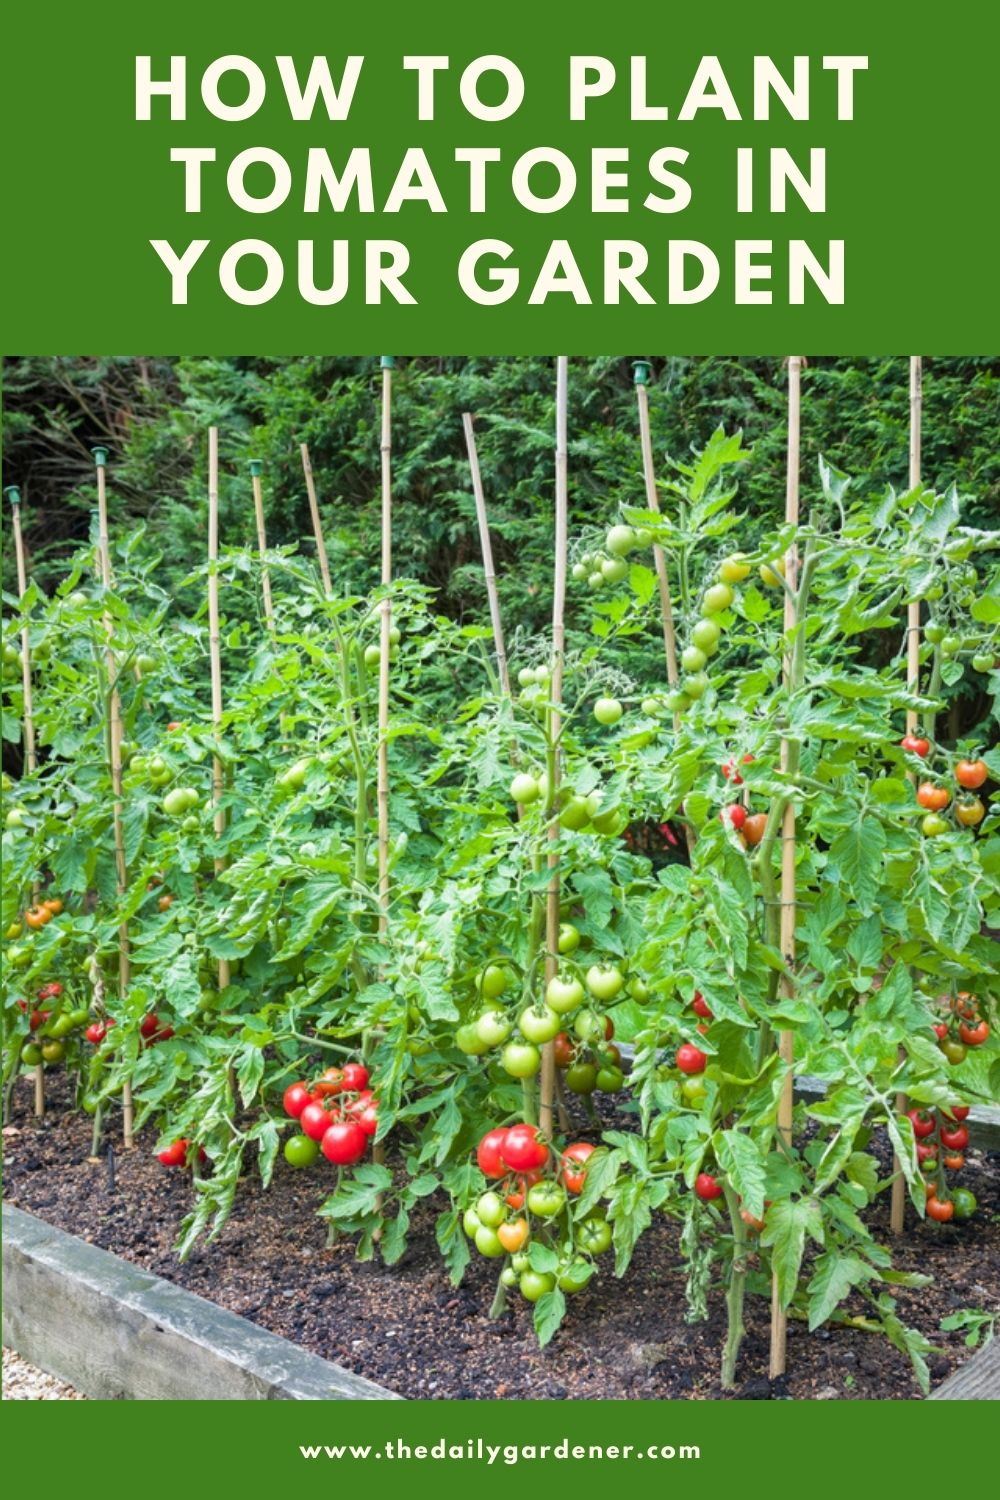 How to Plant Tomatoes in Your Garden (Tricks to Care!) 2